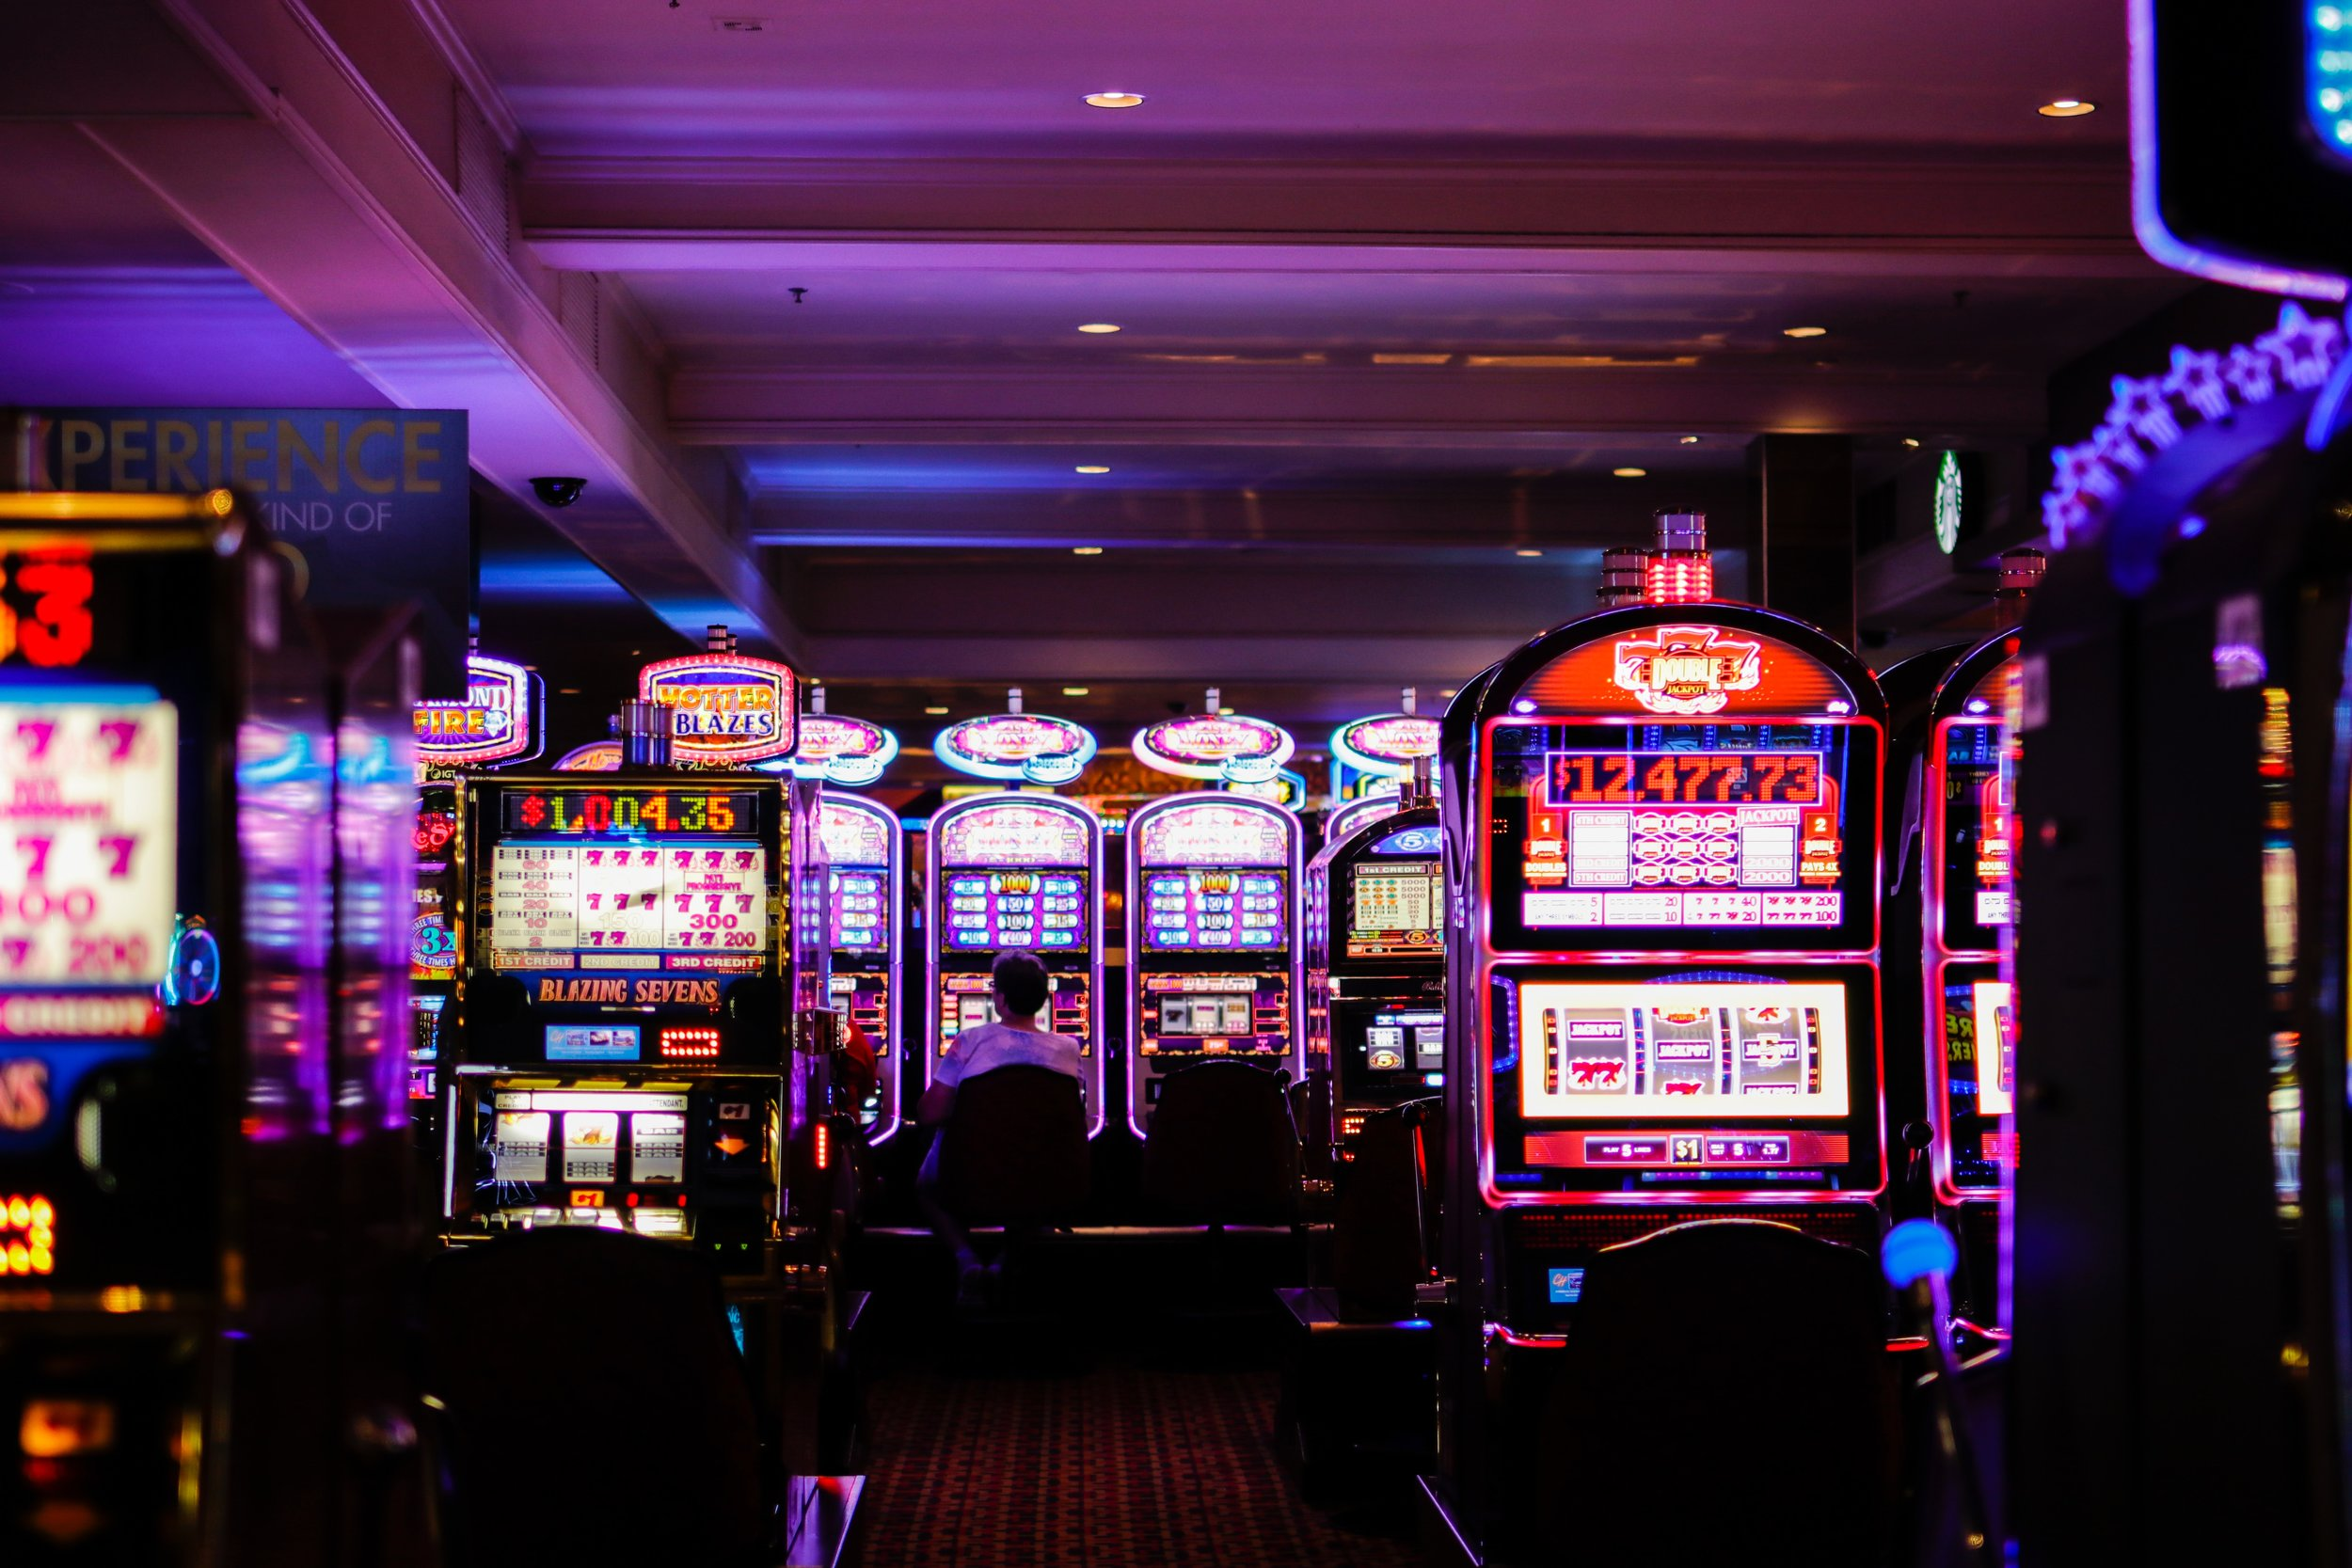 Casinos in Vegas are, of course, one of the best things to do while visiting.